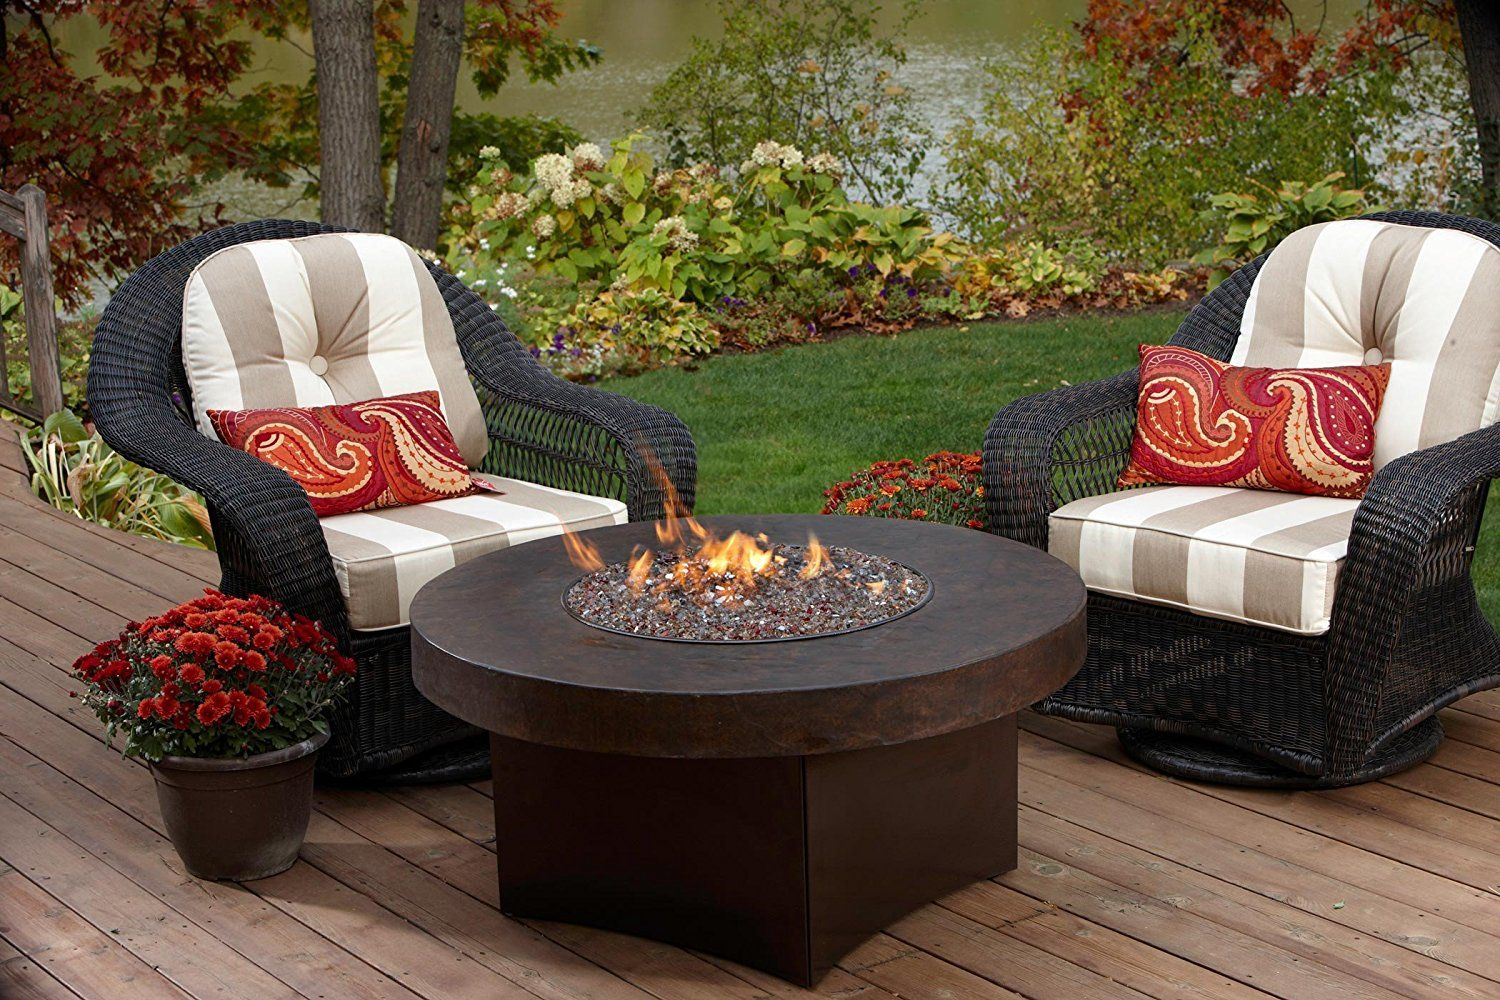 Oriflamme savanna gas outdoor fire pit table